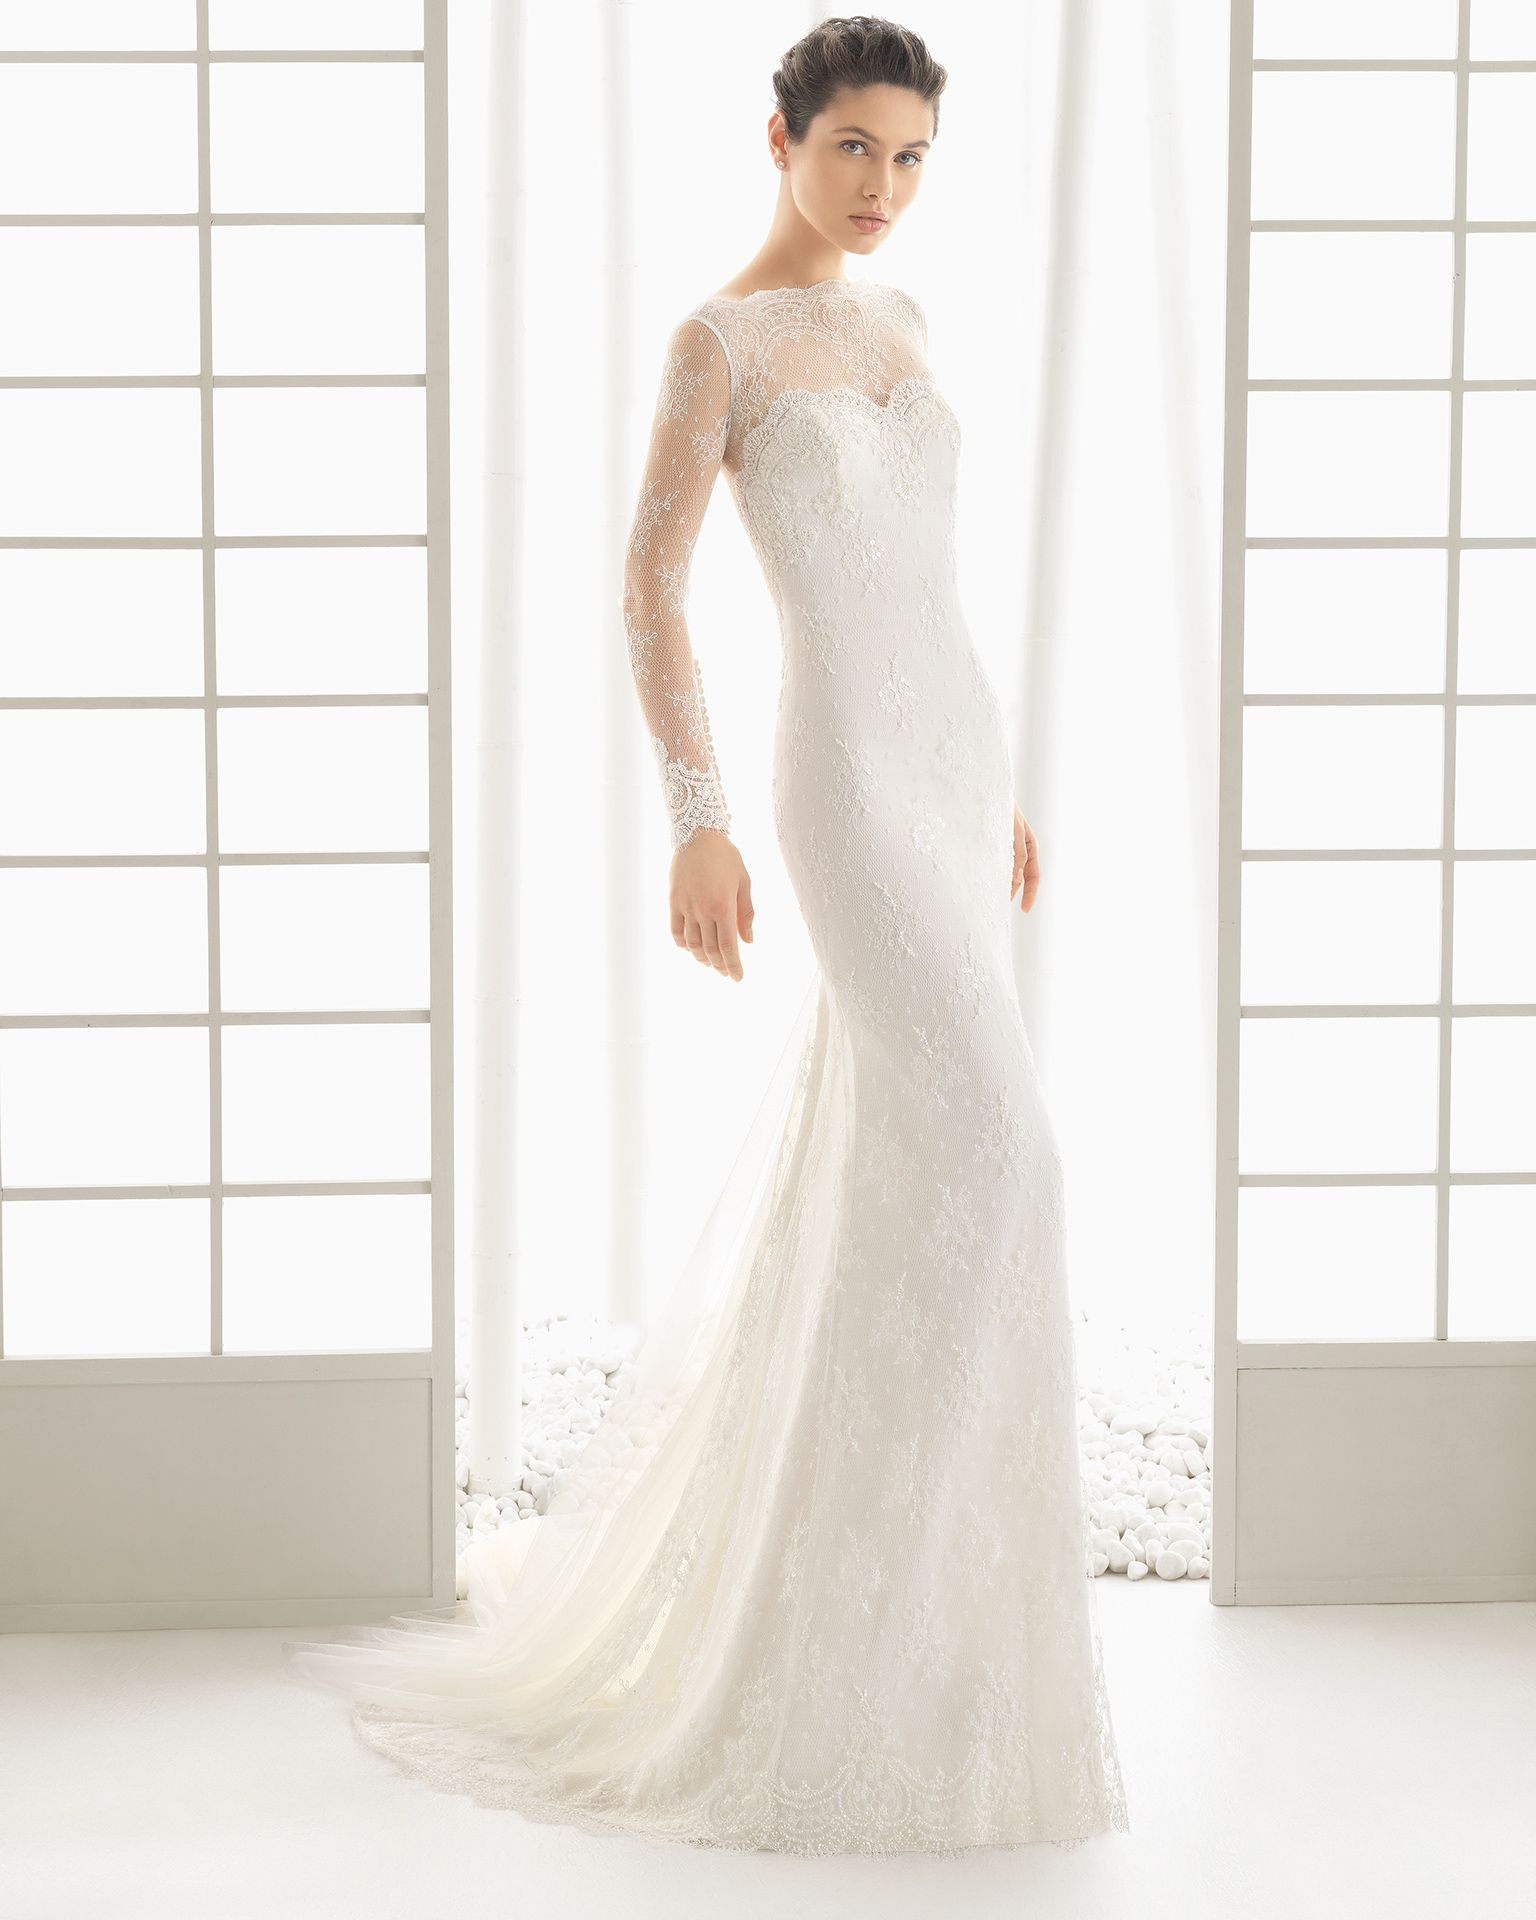 Ecru wedding dress  Dolce  Rosa Clará  Bridal Collection  Rosa clara Wedding